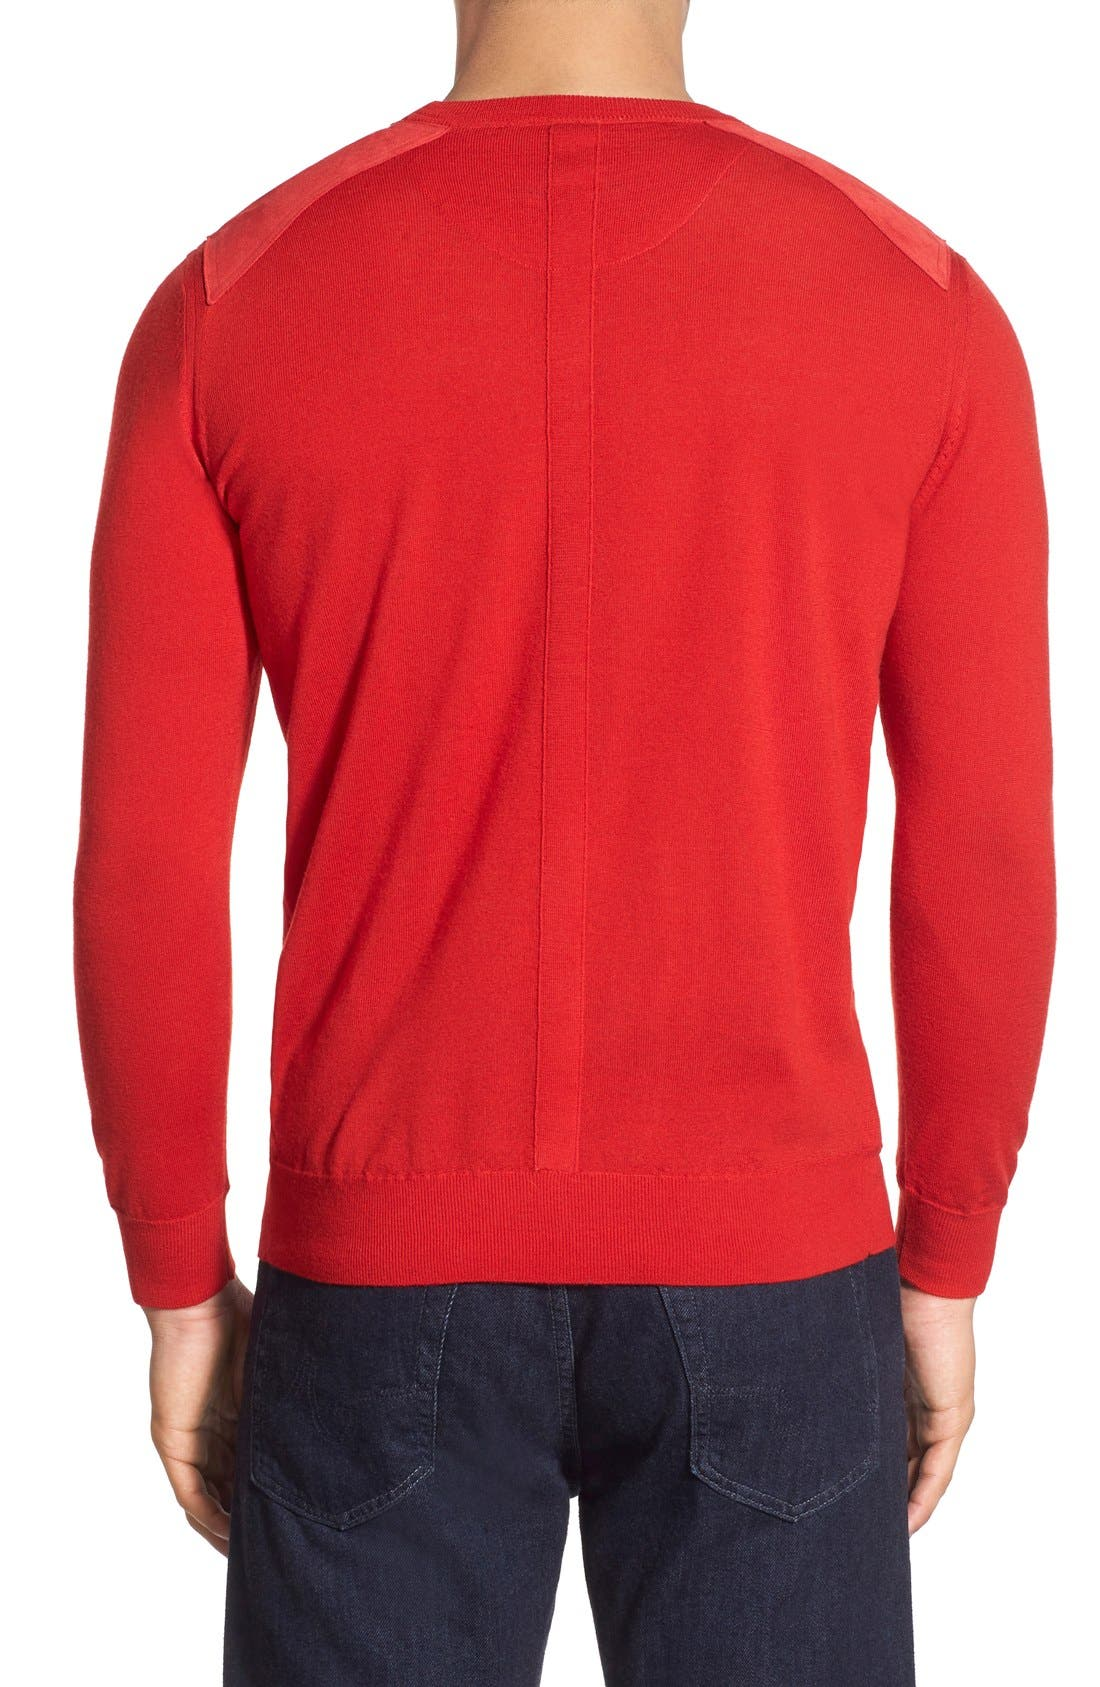 Regular Fit Crewneck Sweater,                             Alternate thumbnail 5, color,                             Cherry